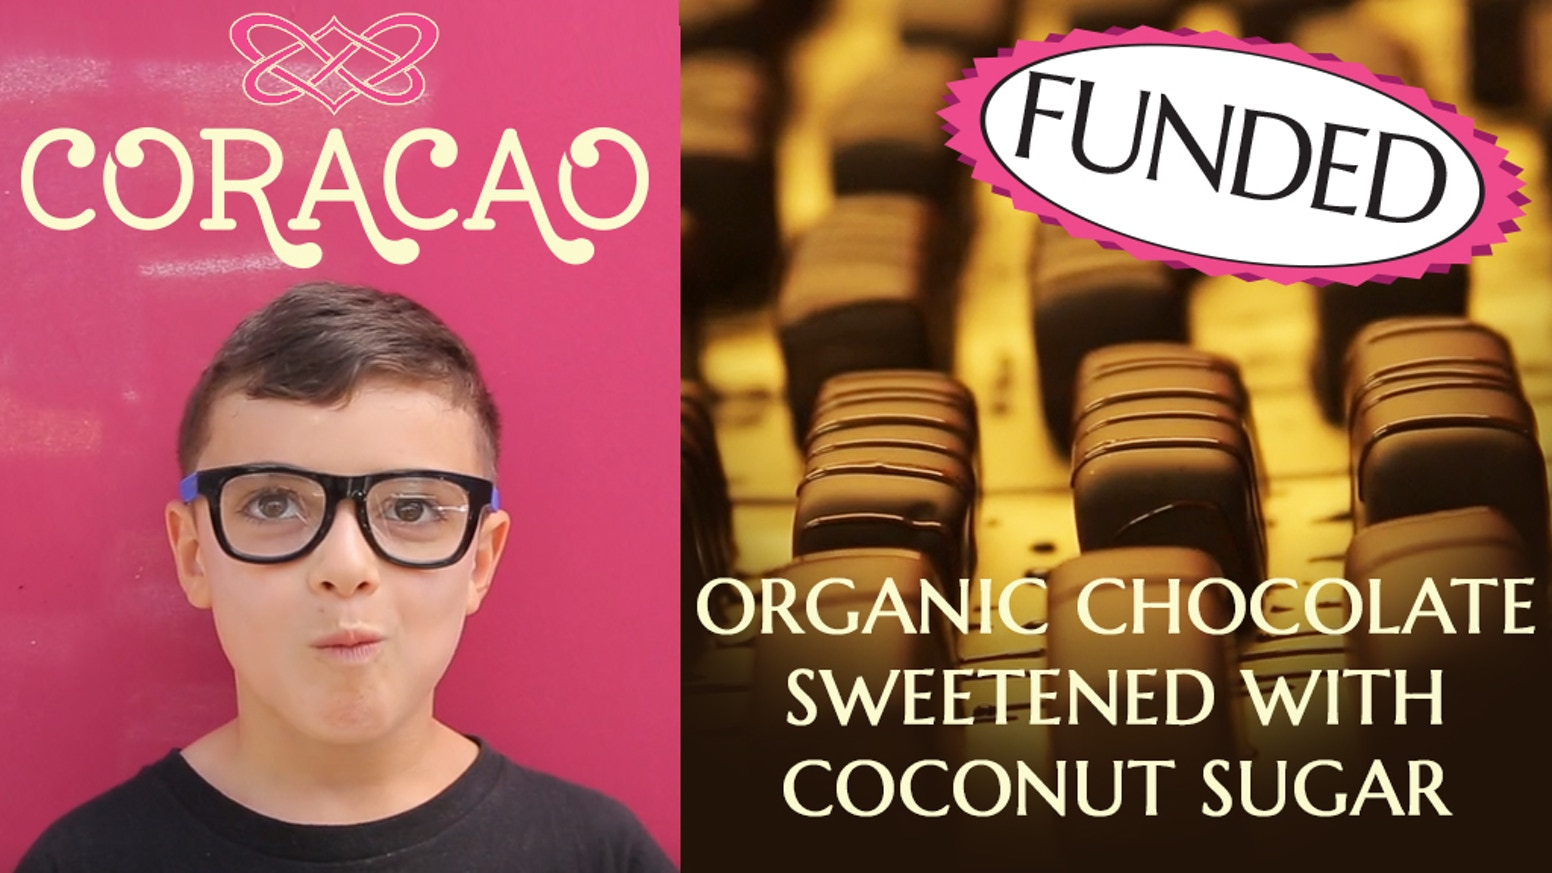 100% FUNDED! Healthier VEGAN & PALEO candies & chocolates. All of it sweetened with low-glycemic coconut sugar. SHOP OUR STORE!